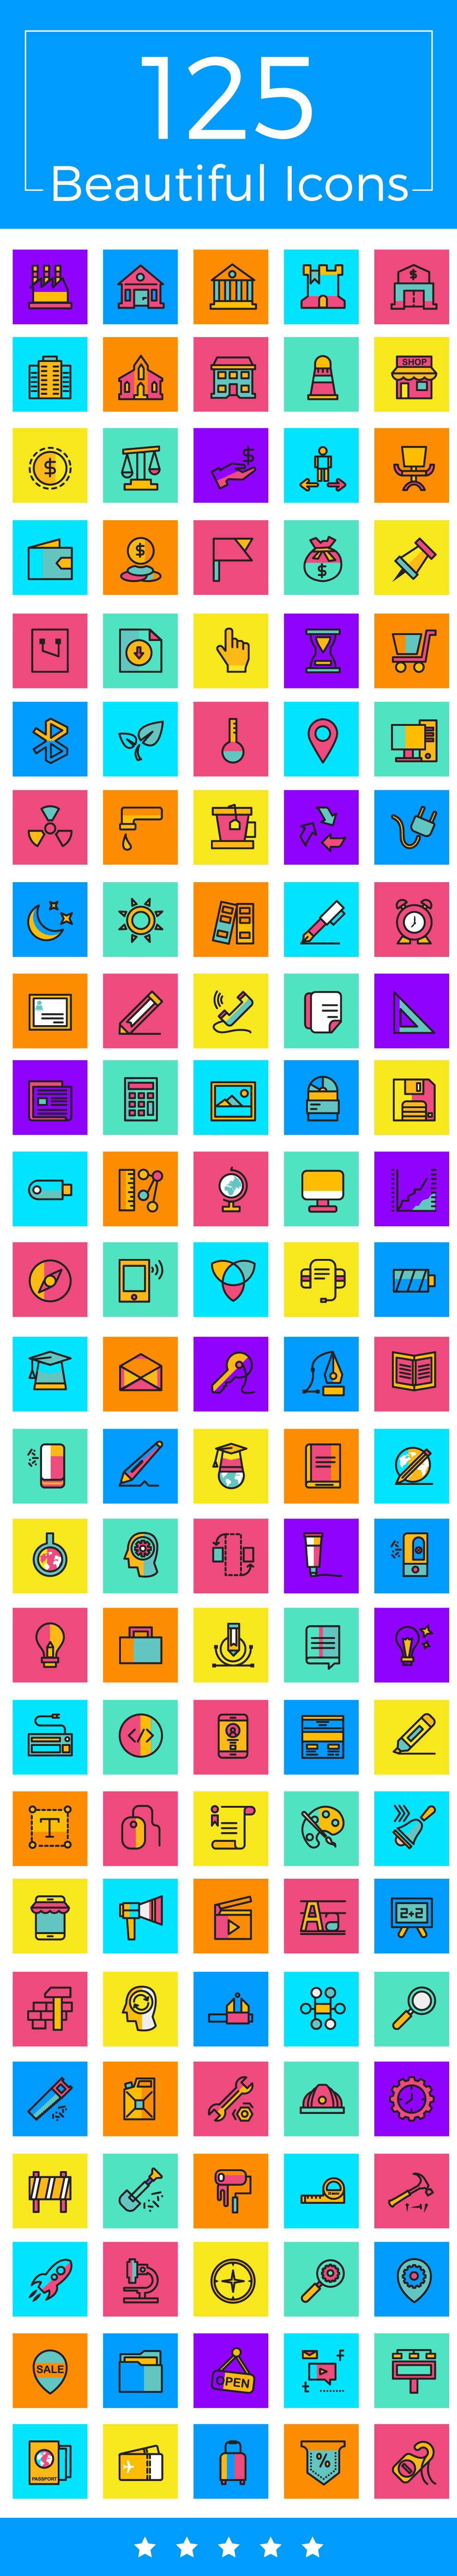 125 Beautiful Icons Screenshot 1